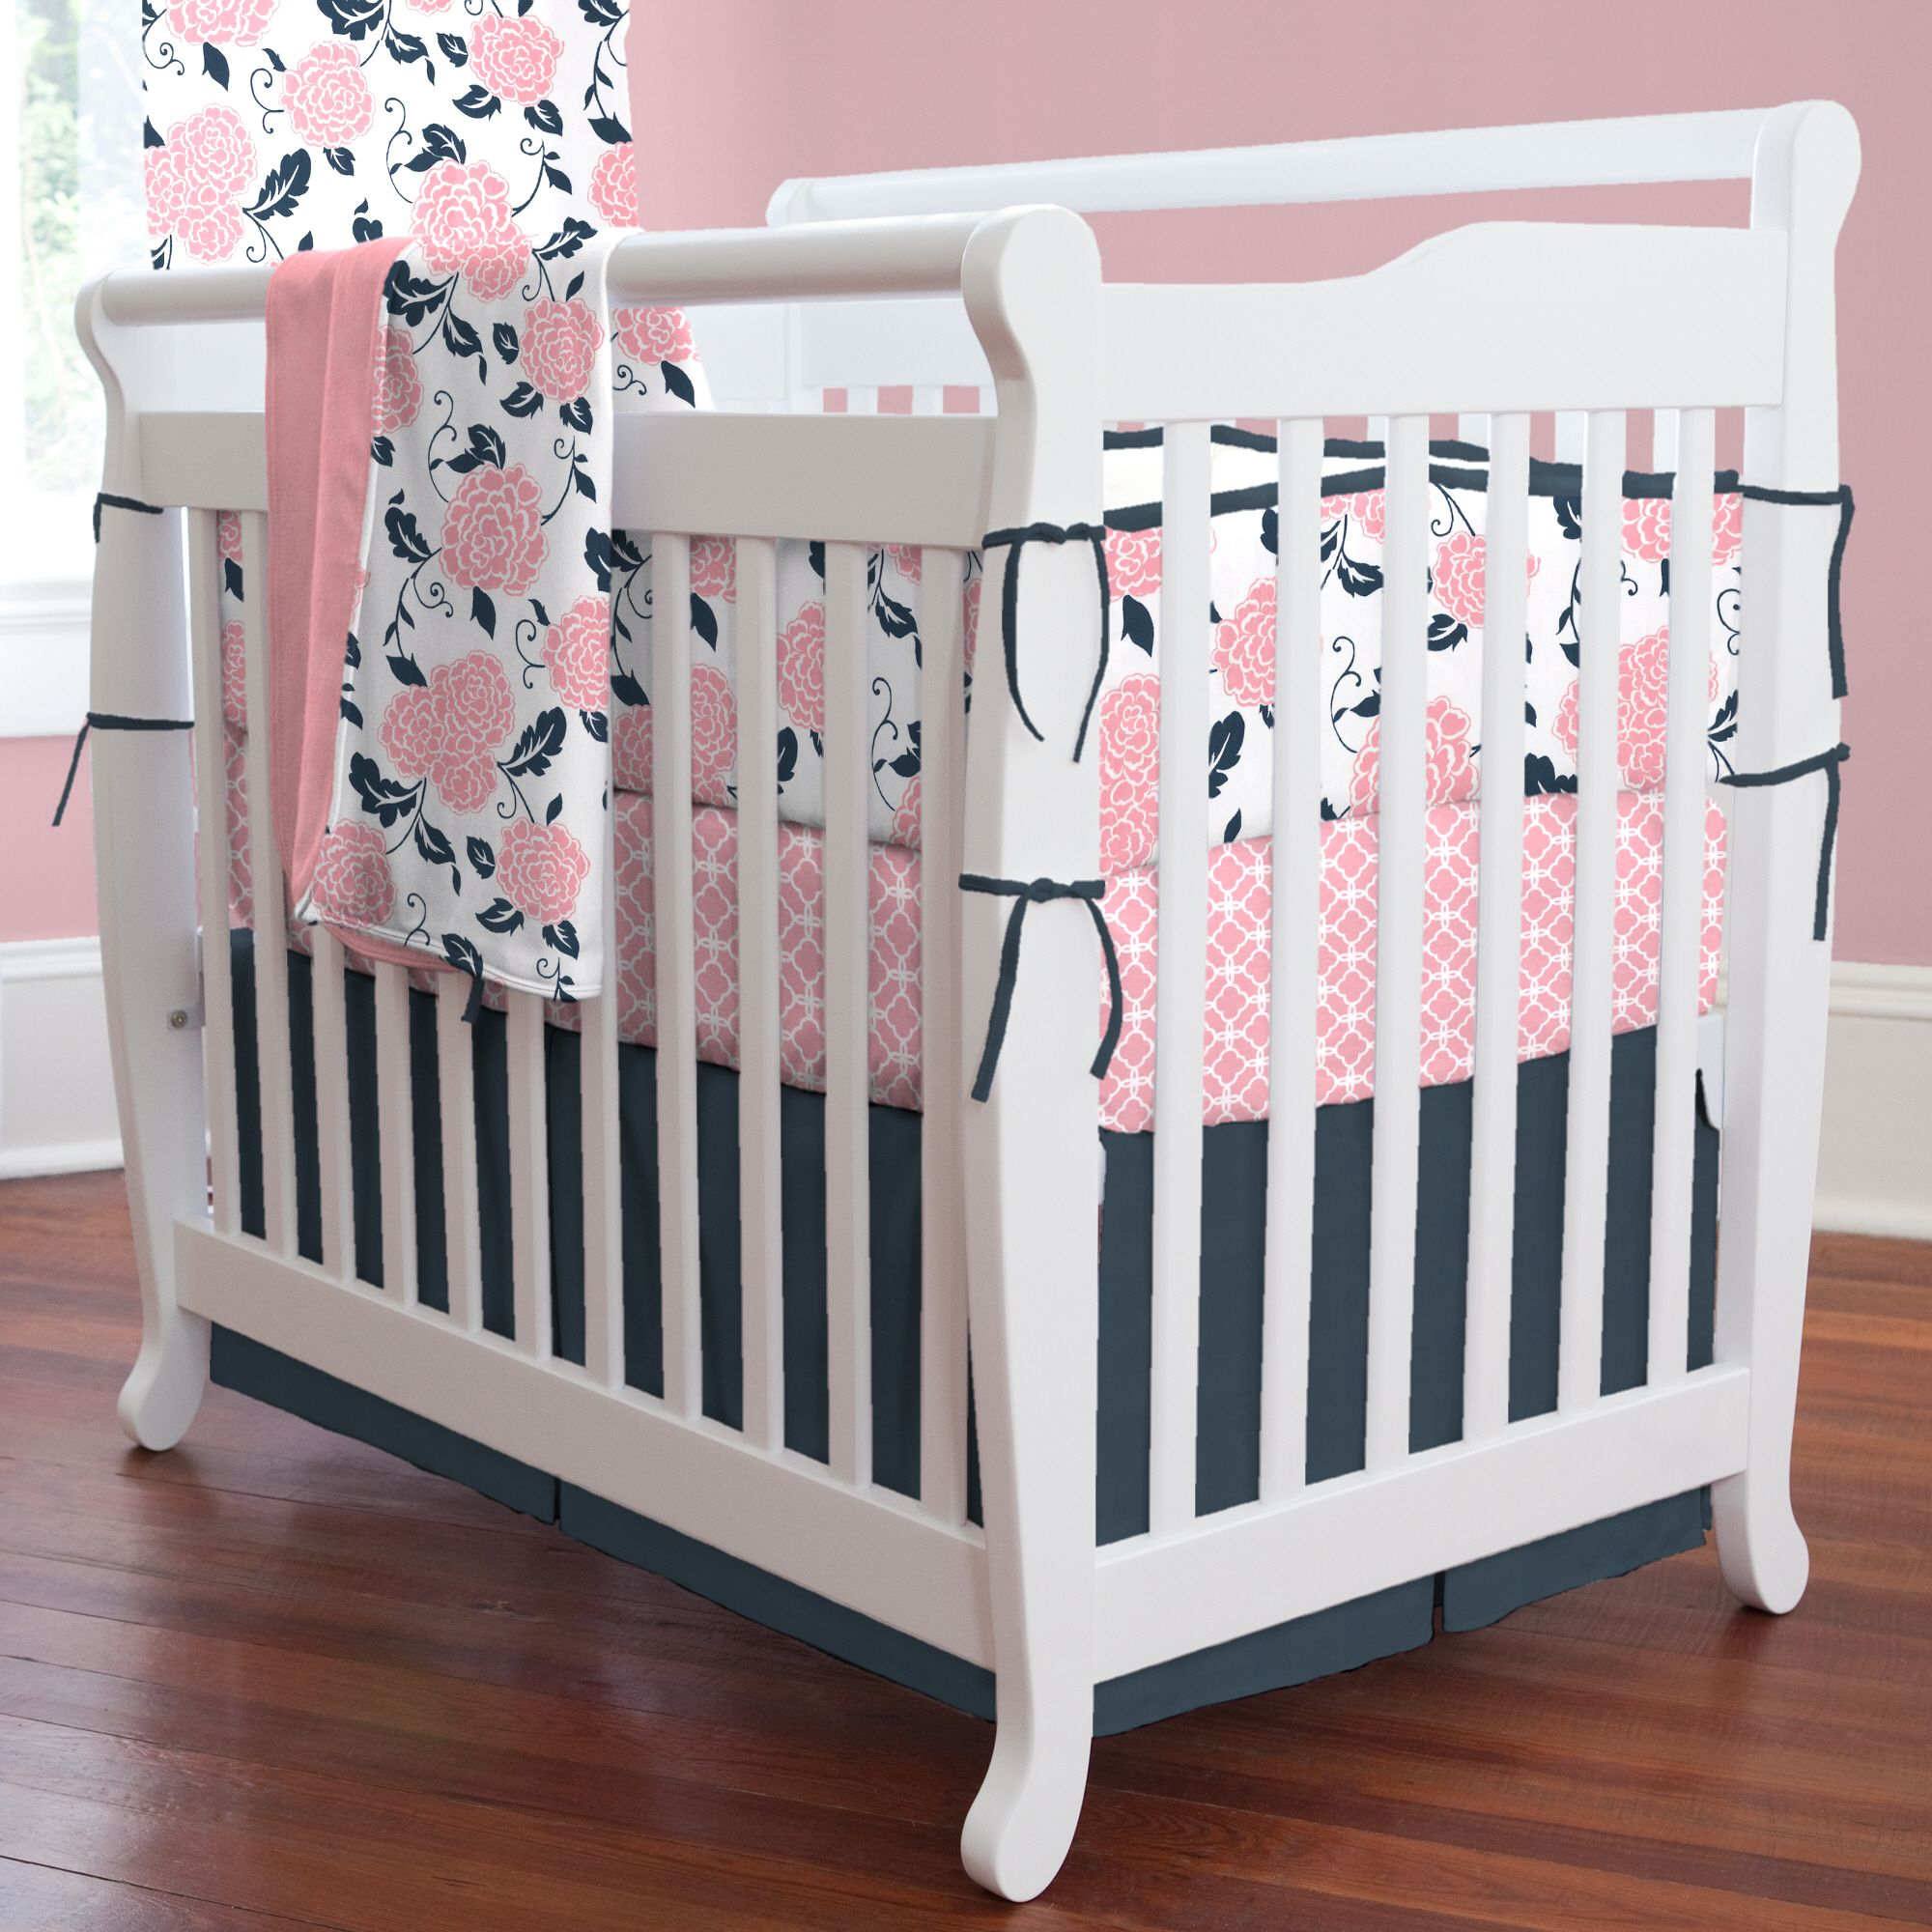 Mini Crib Bedding Sets For Girl.Coral And Navy Floral Mini Crib Bedding Carouseldesigns